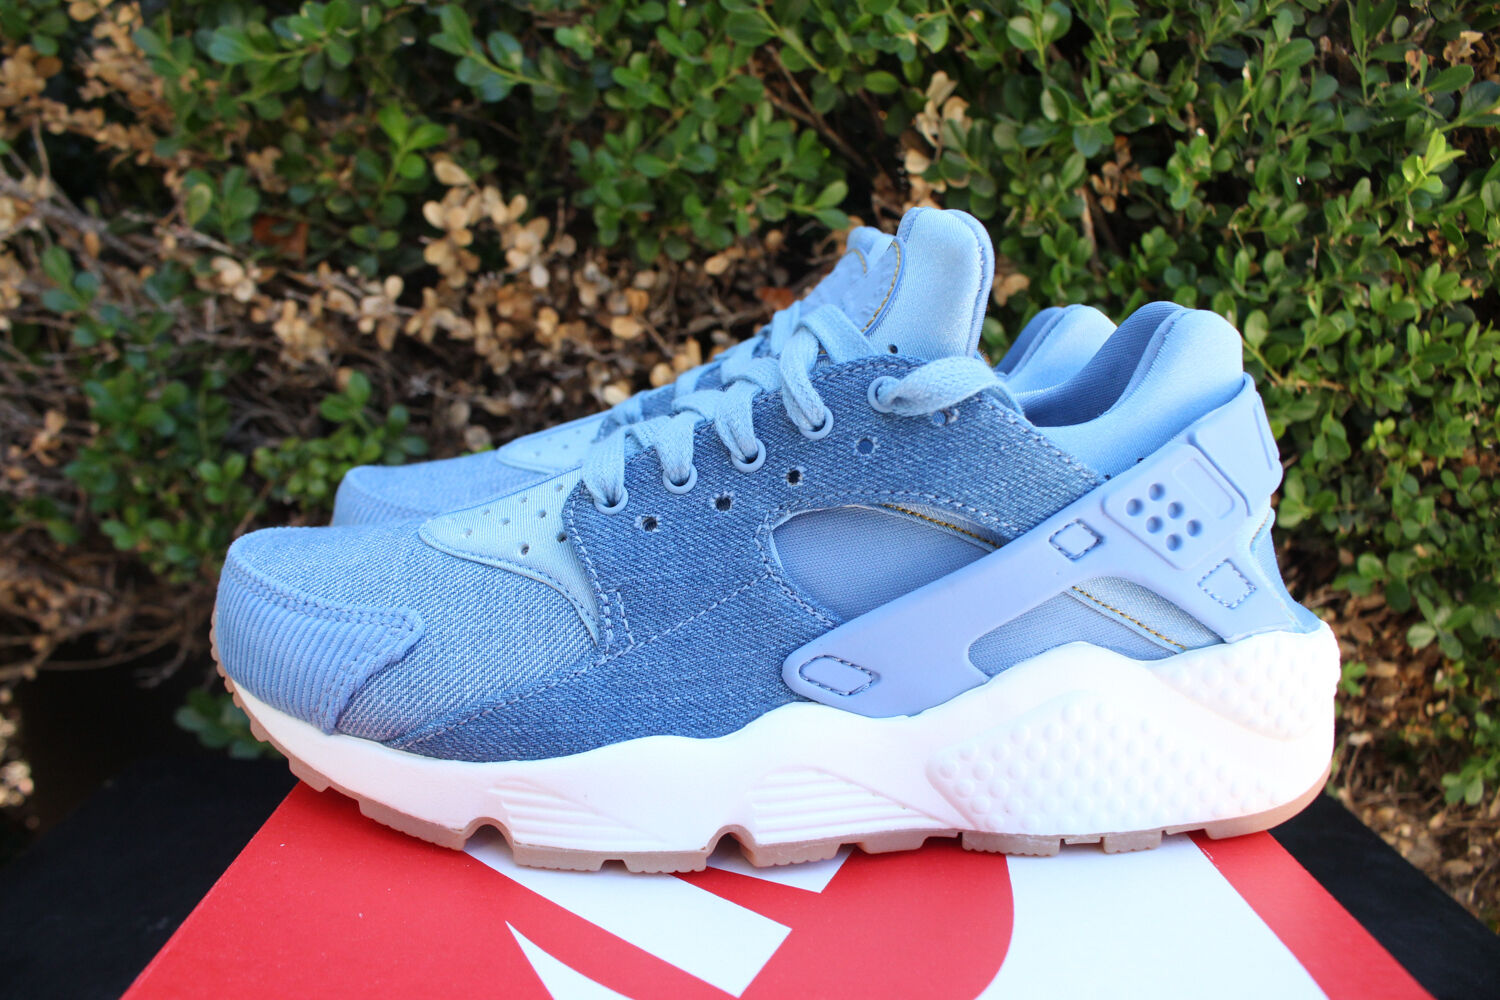 NIKE WOMENS AIR HUARACHE RUN SZ 5.5 DENIM GUM DECEMBER SKY blueE gold 859429 402